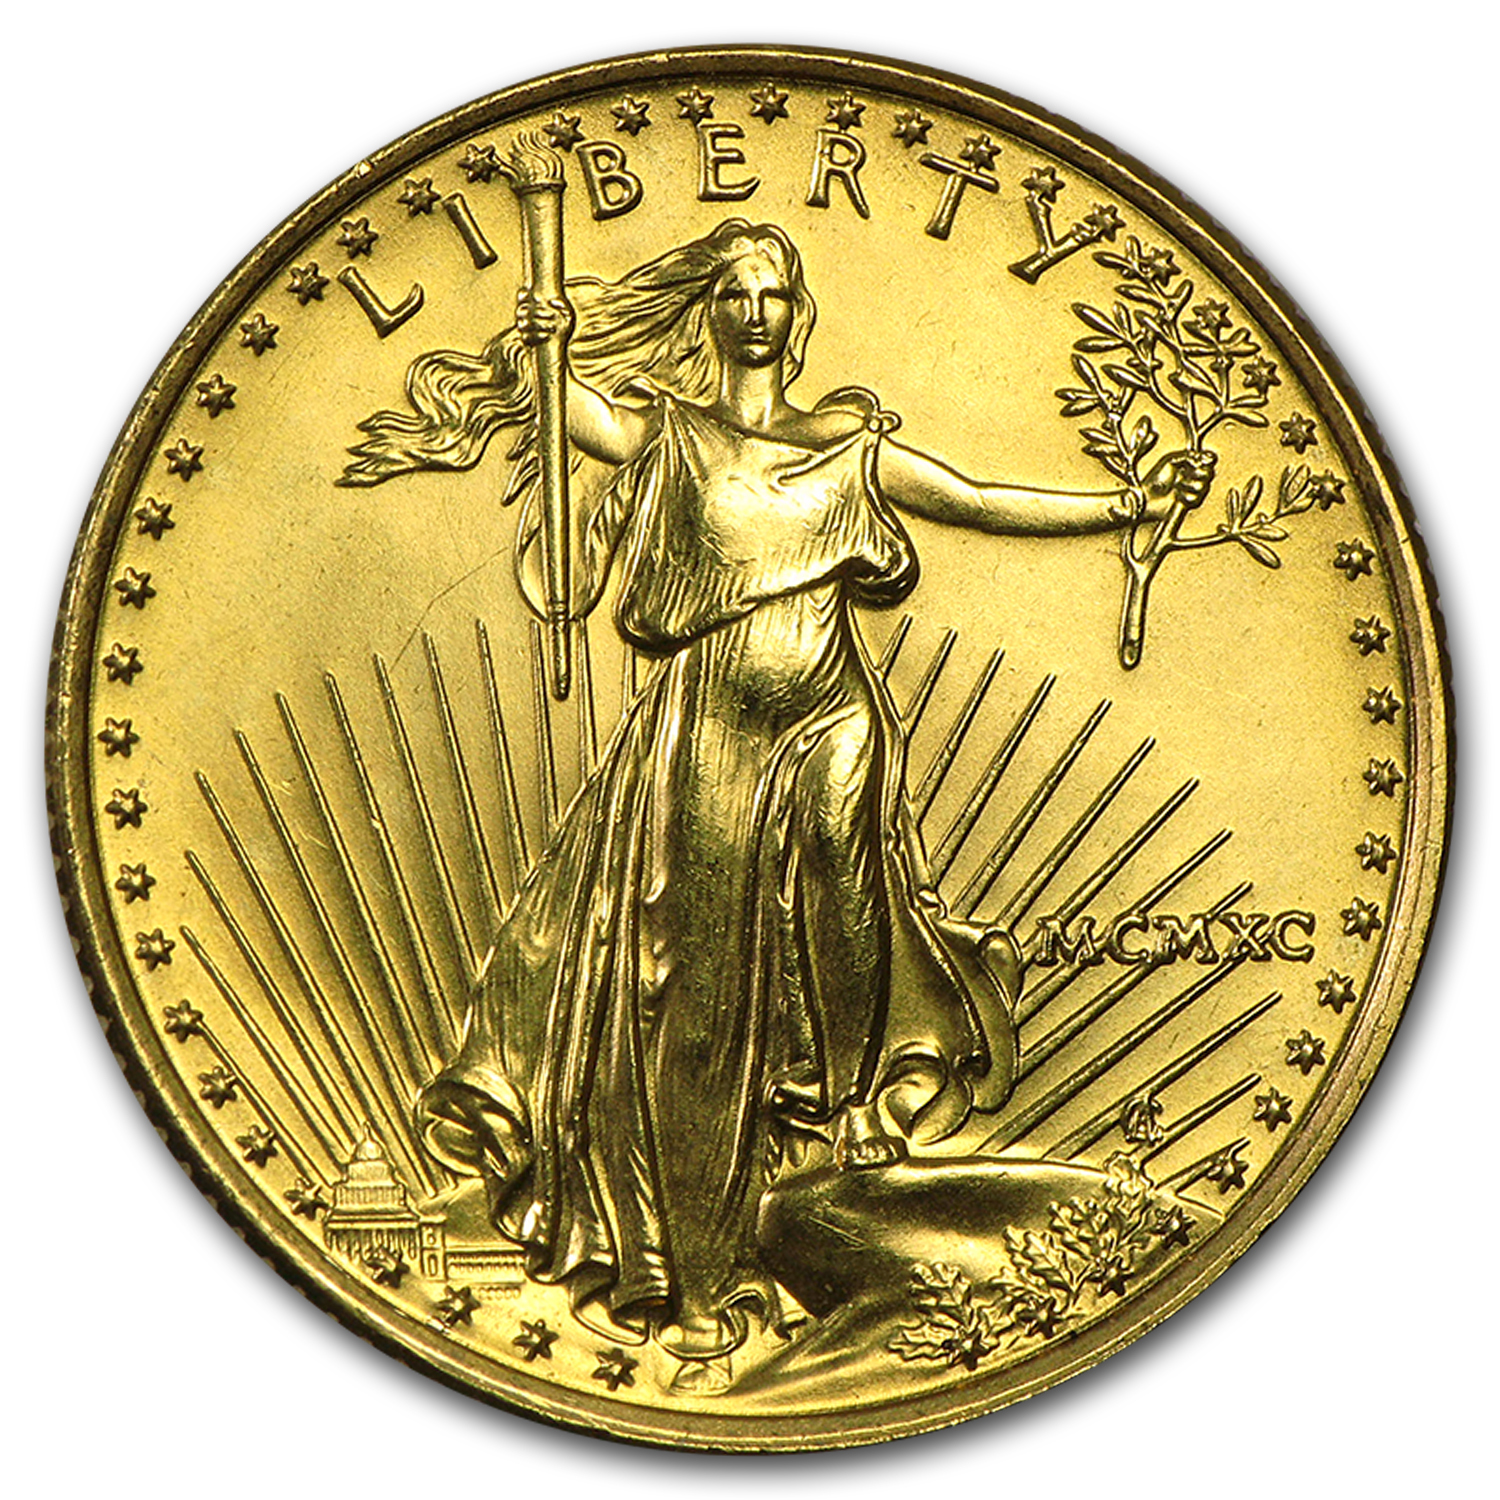 1990 1/4 oz Gold American Eagle BU (MCMXC)